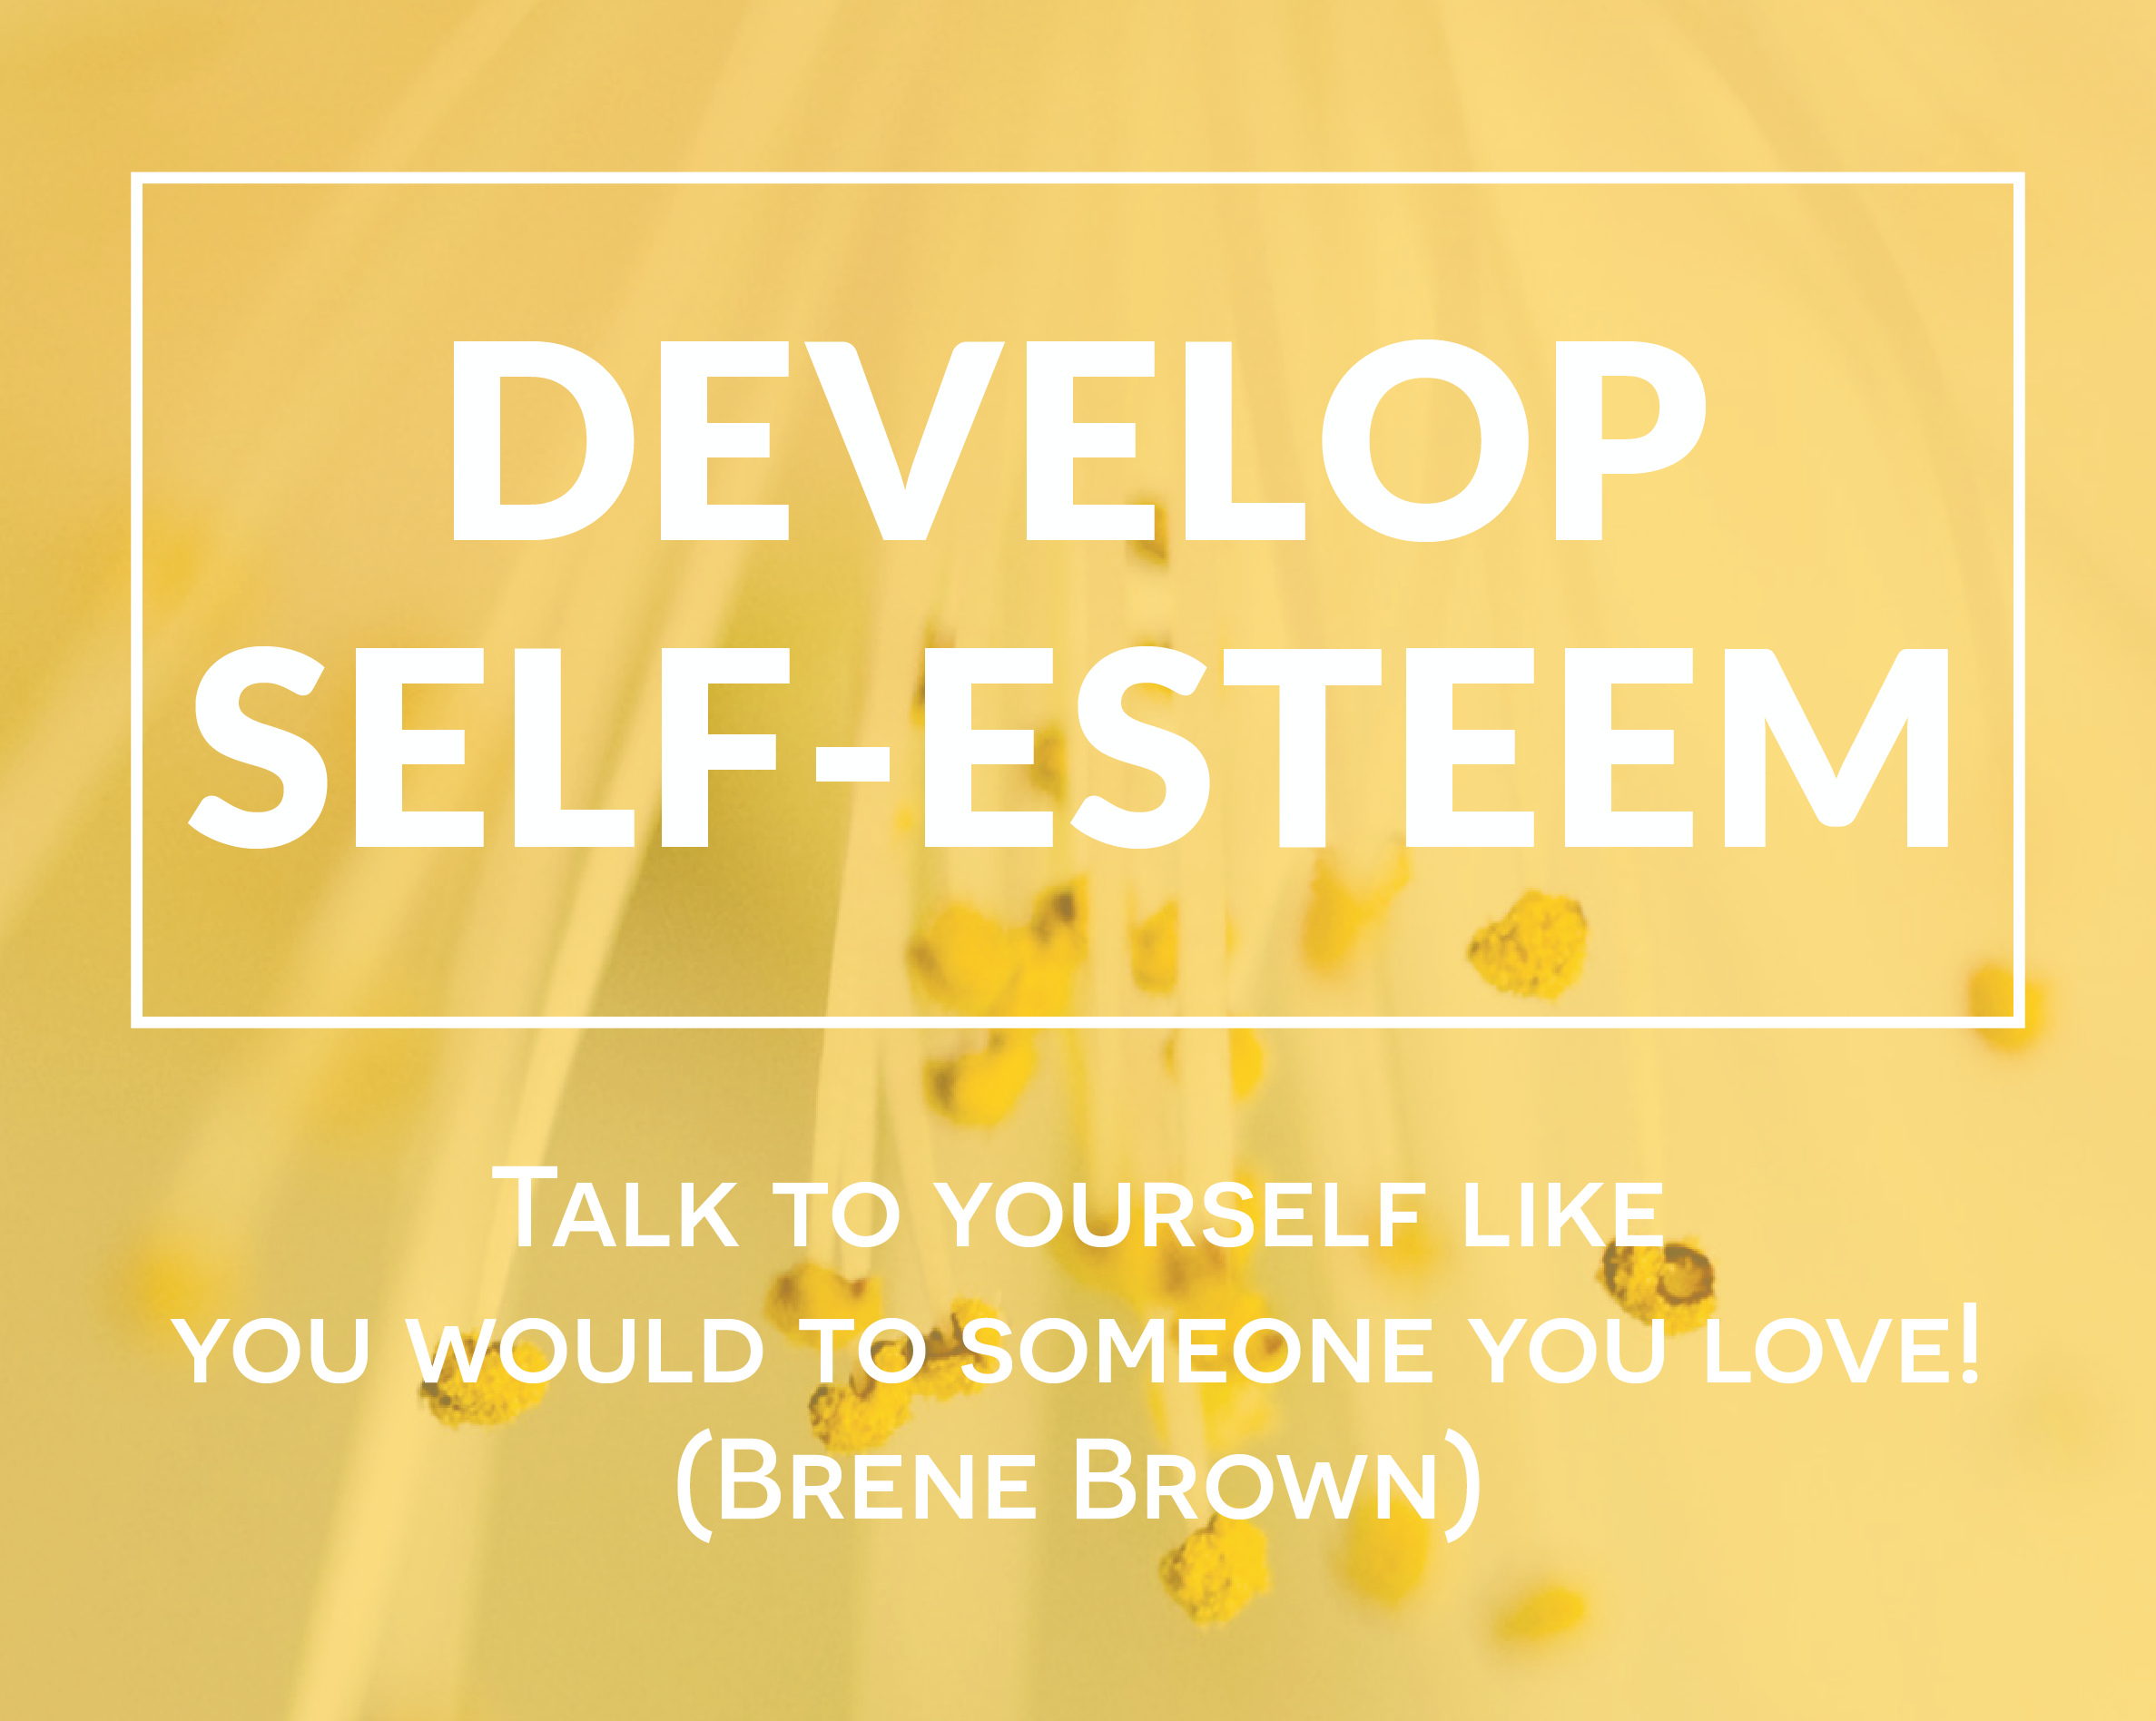 DEVELOP SELF-ESTEEM